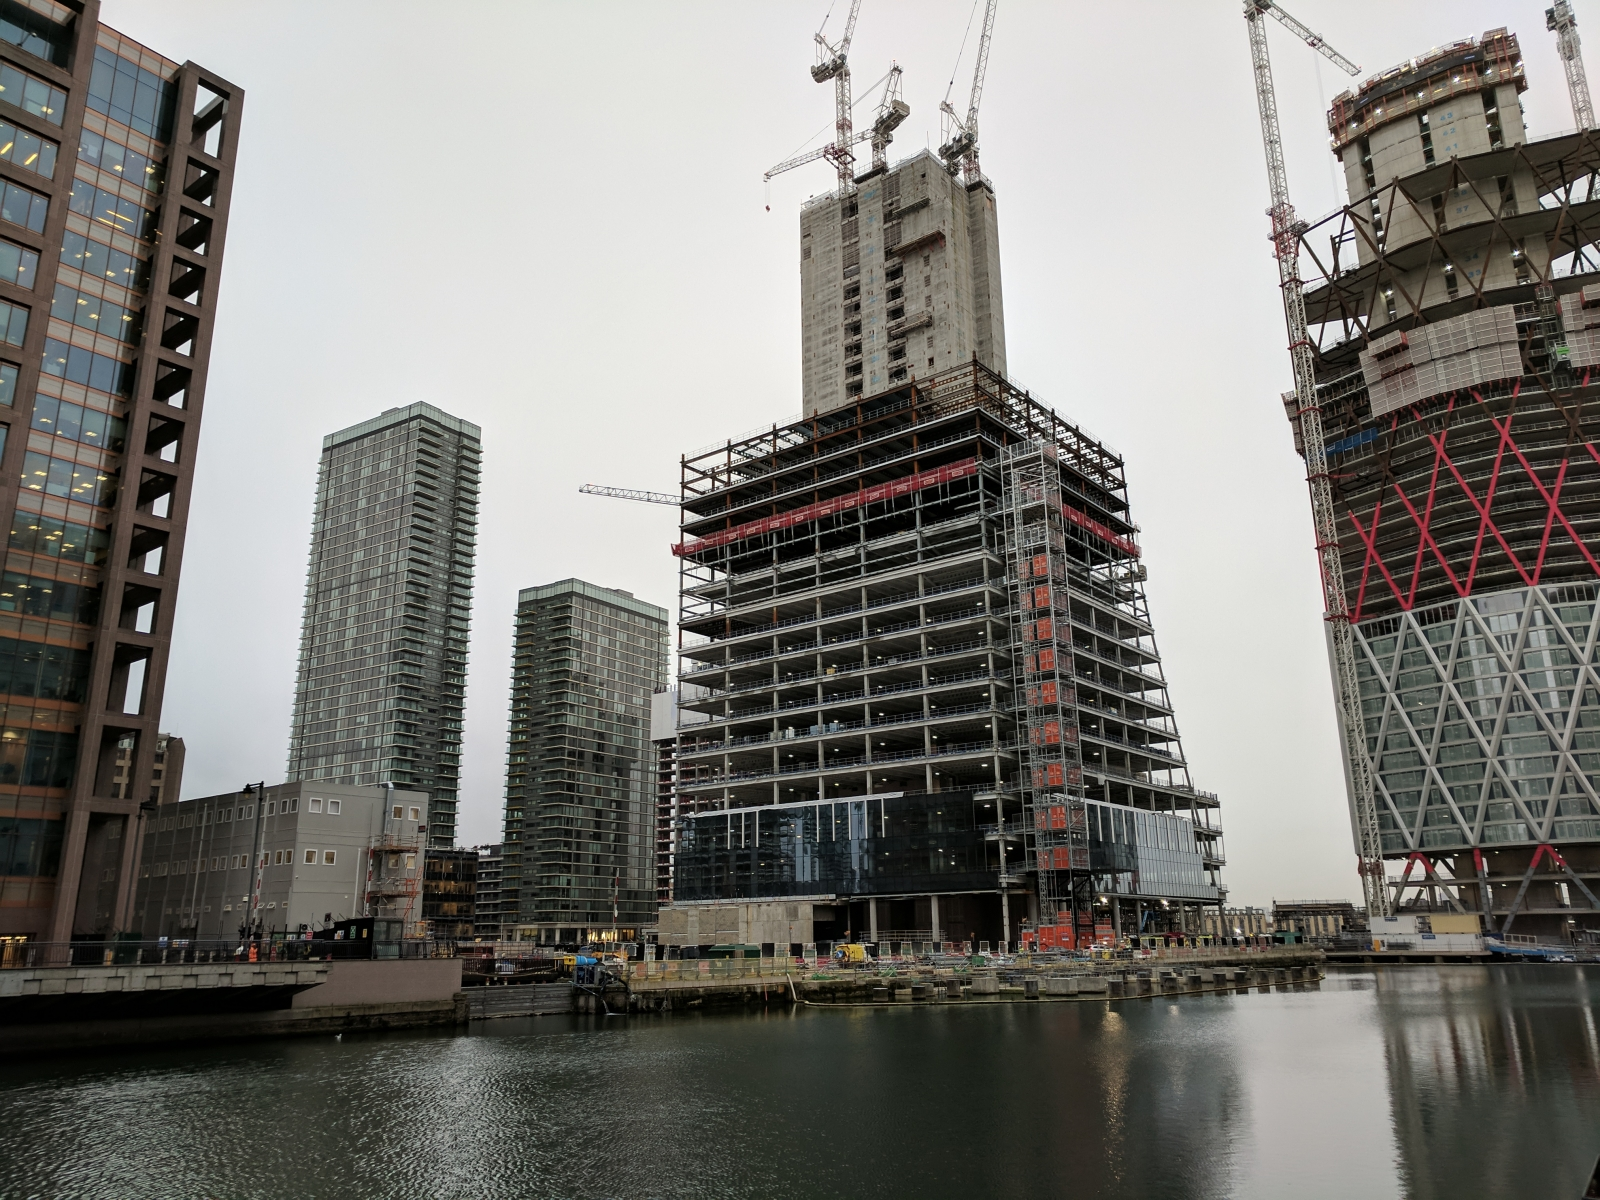 Man falls 50ft to death at Canary Wharf building site